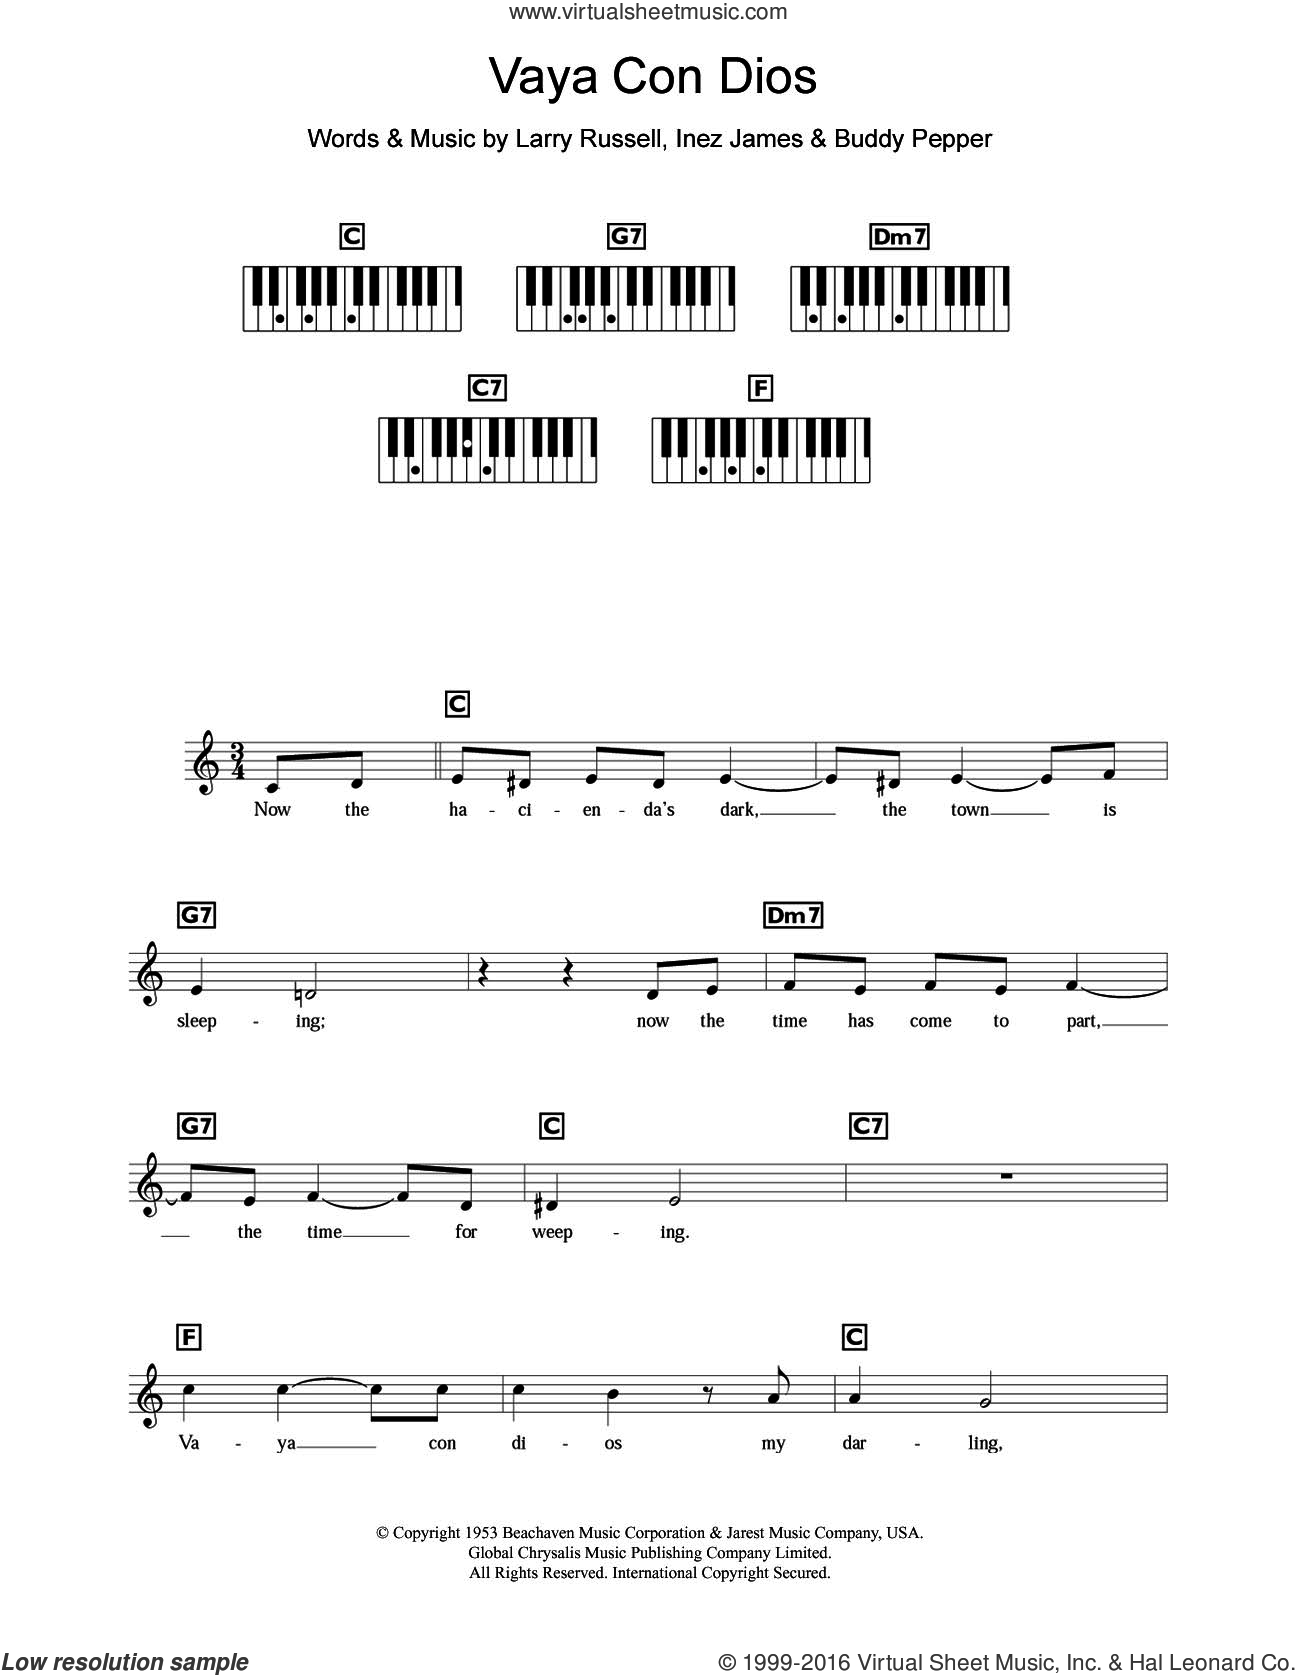 Vaya Con Dios sheet music for piano solo (chords, lyrics, melody) by Larry Russell